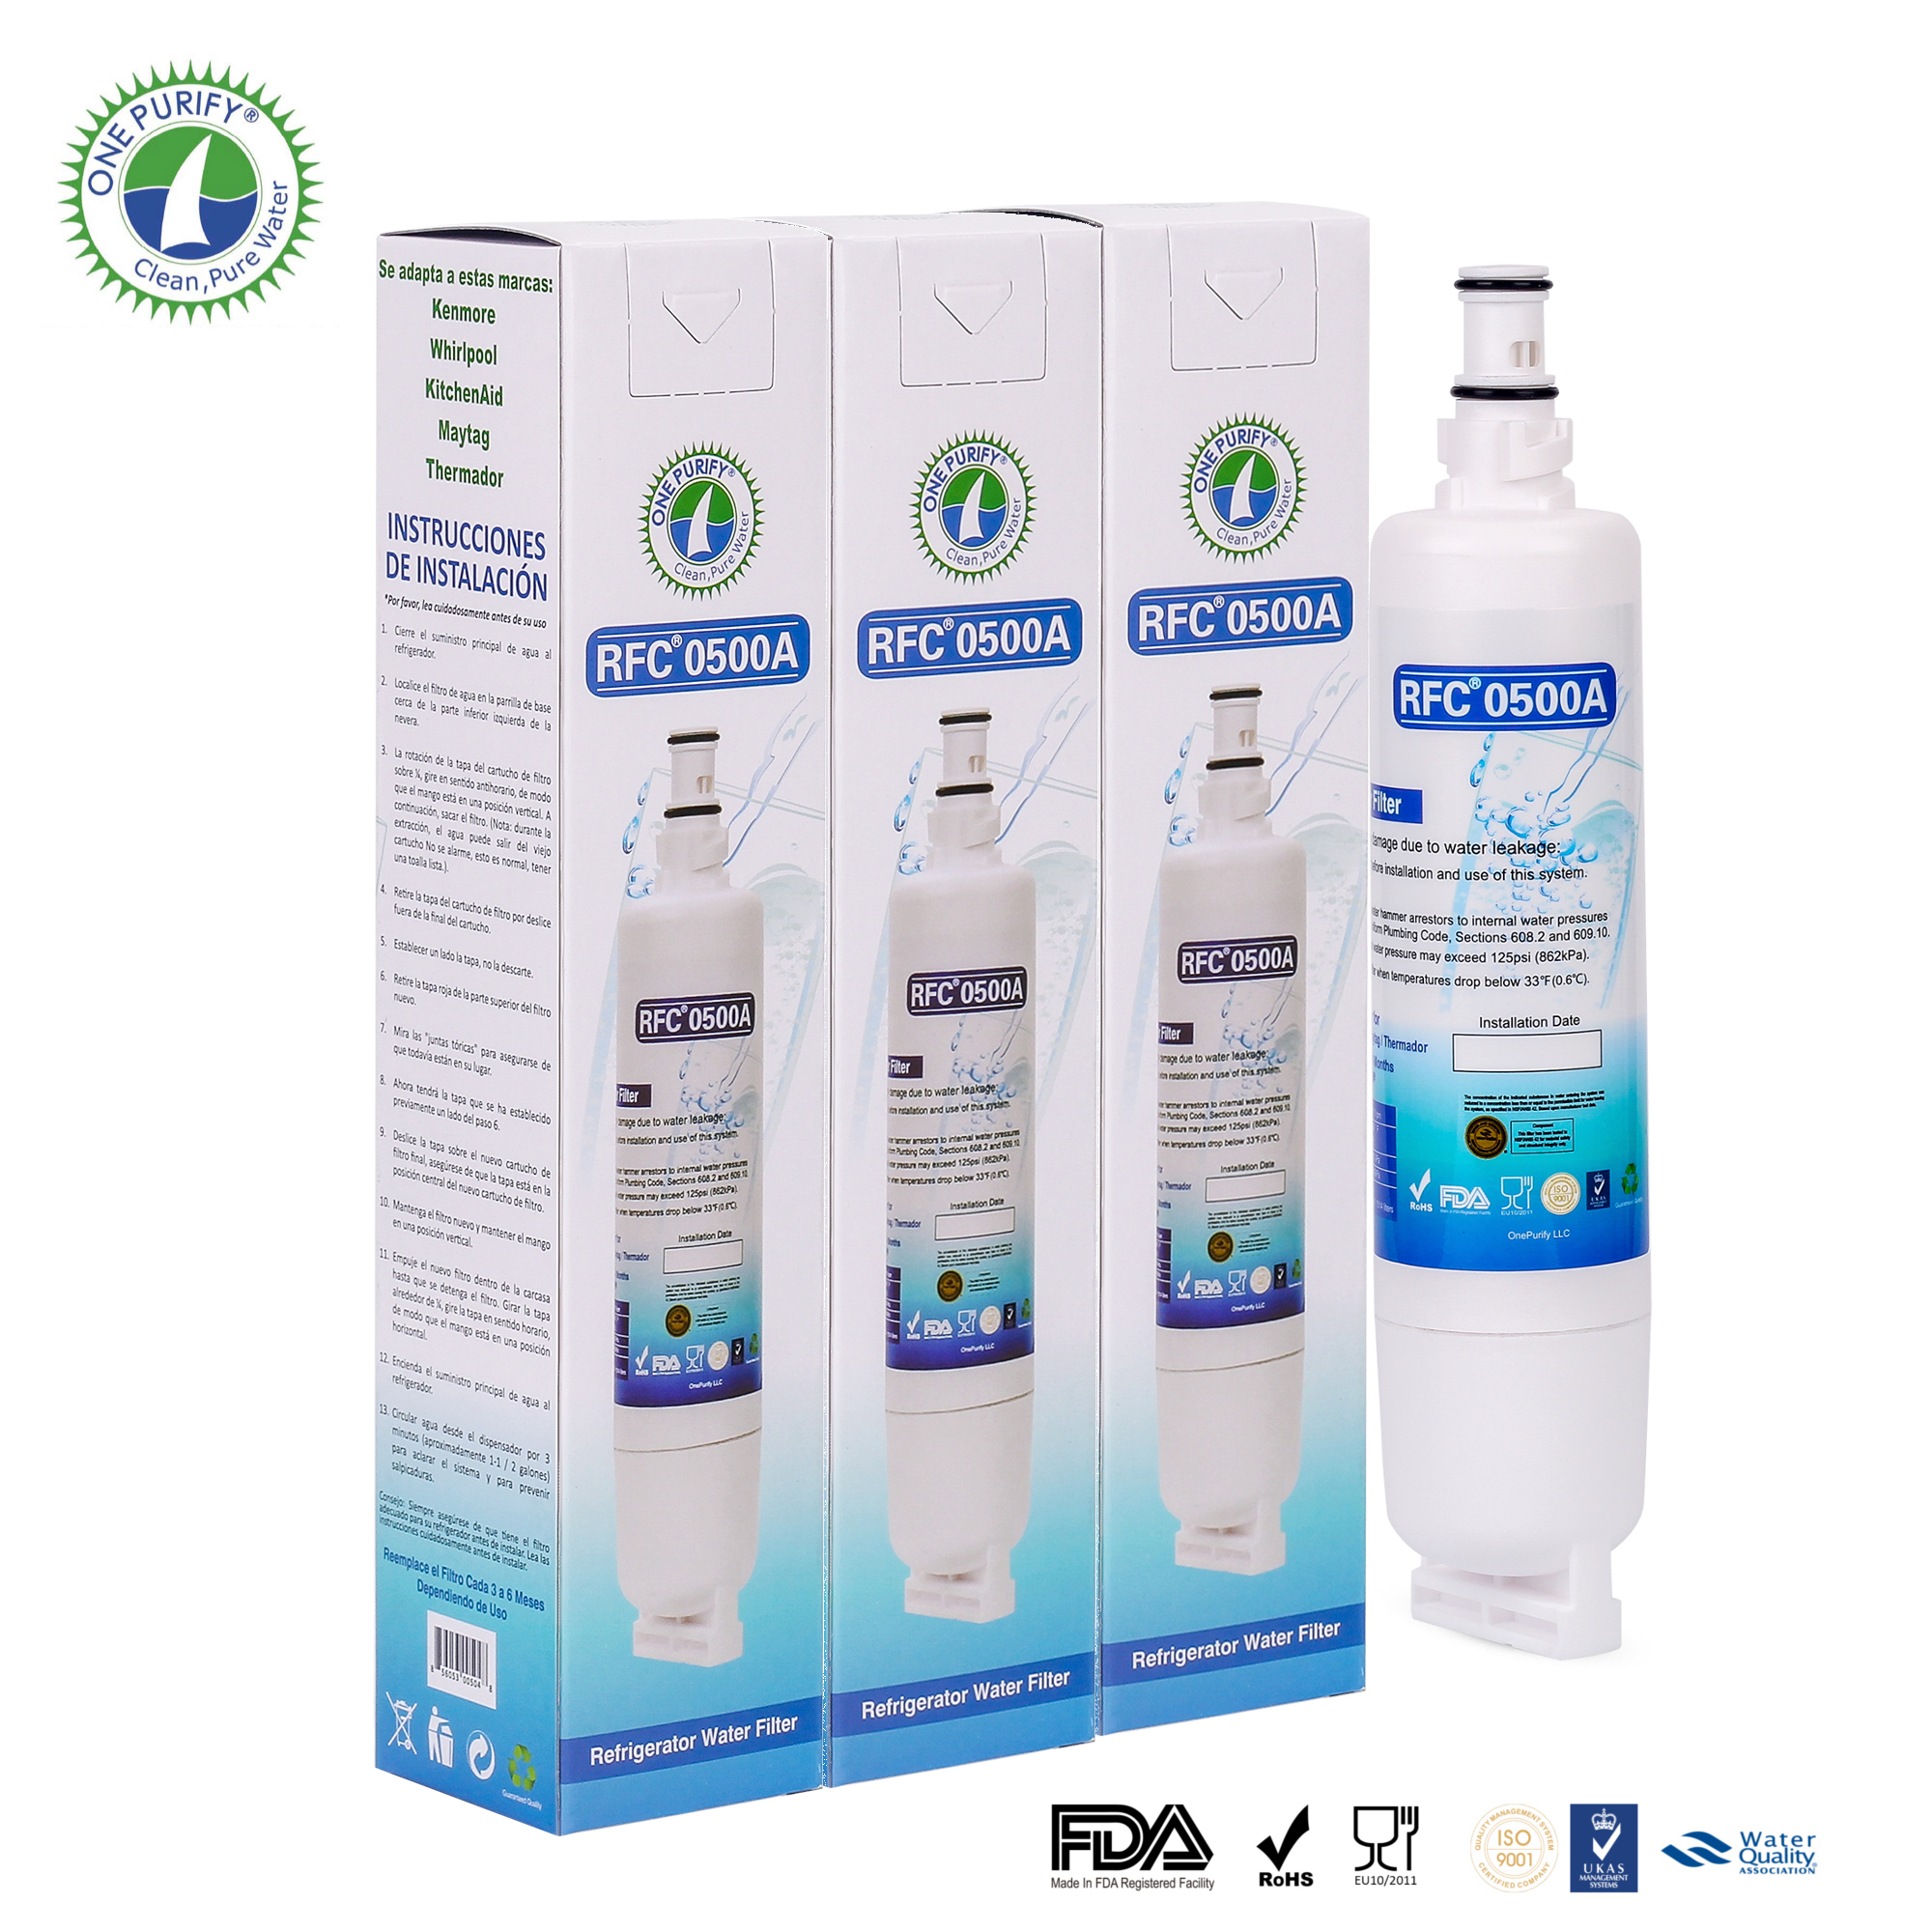 Whirlpool 4396508 4396510 46-9010 Compatible Refrigerator Water Filter 3 Pack